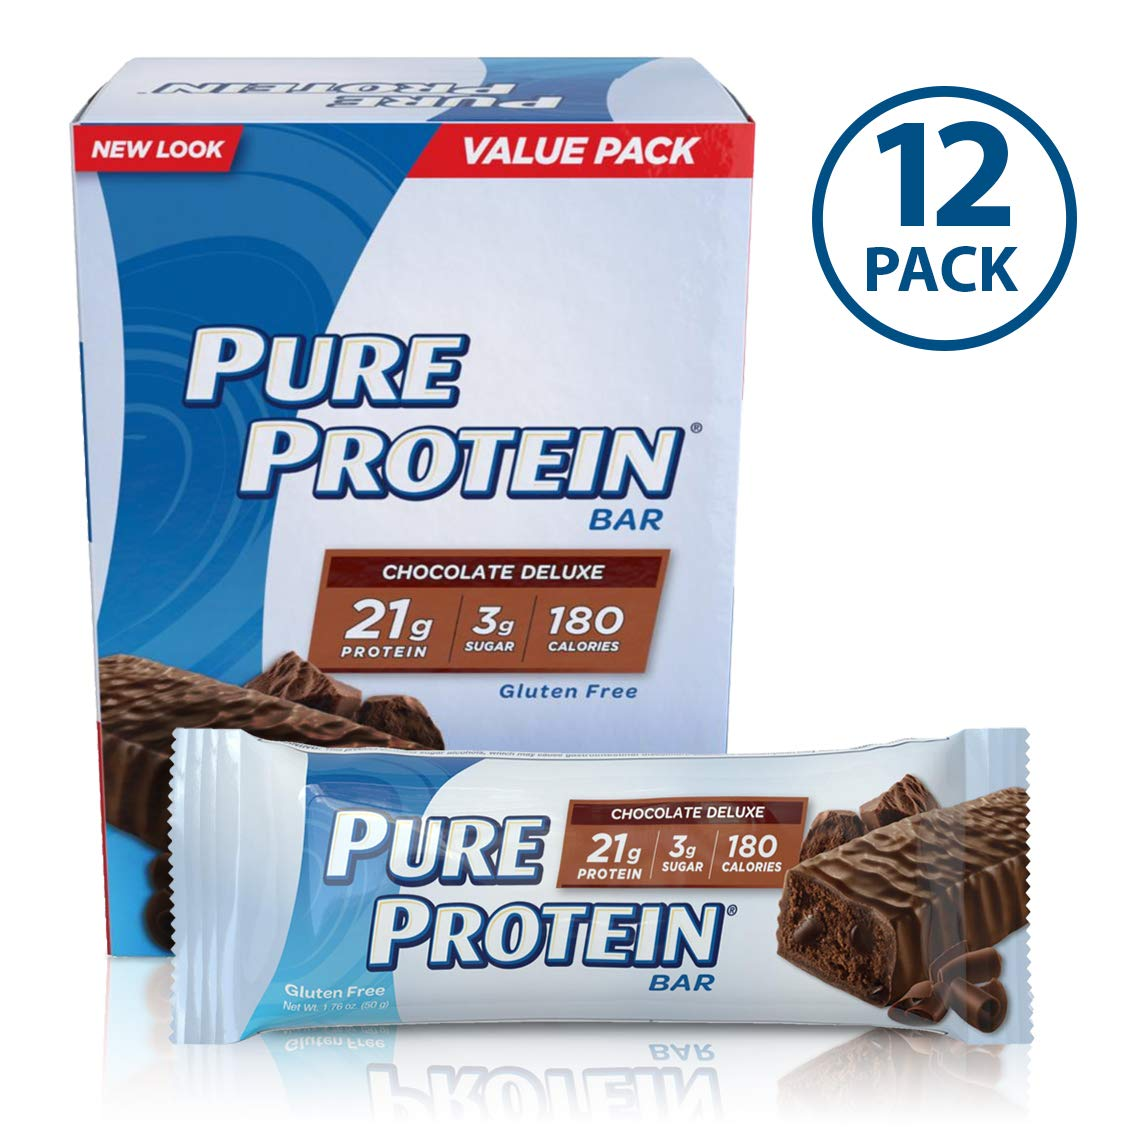 Pure Protein Bars, High Protein, Nutritious Snacks to Support Energy, Low Sugar, Gluten Free, Chocolate Deluxe, 1.76oz, 12 Pack by Pure Protein